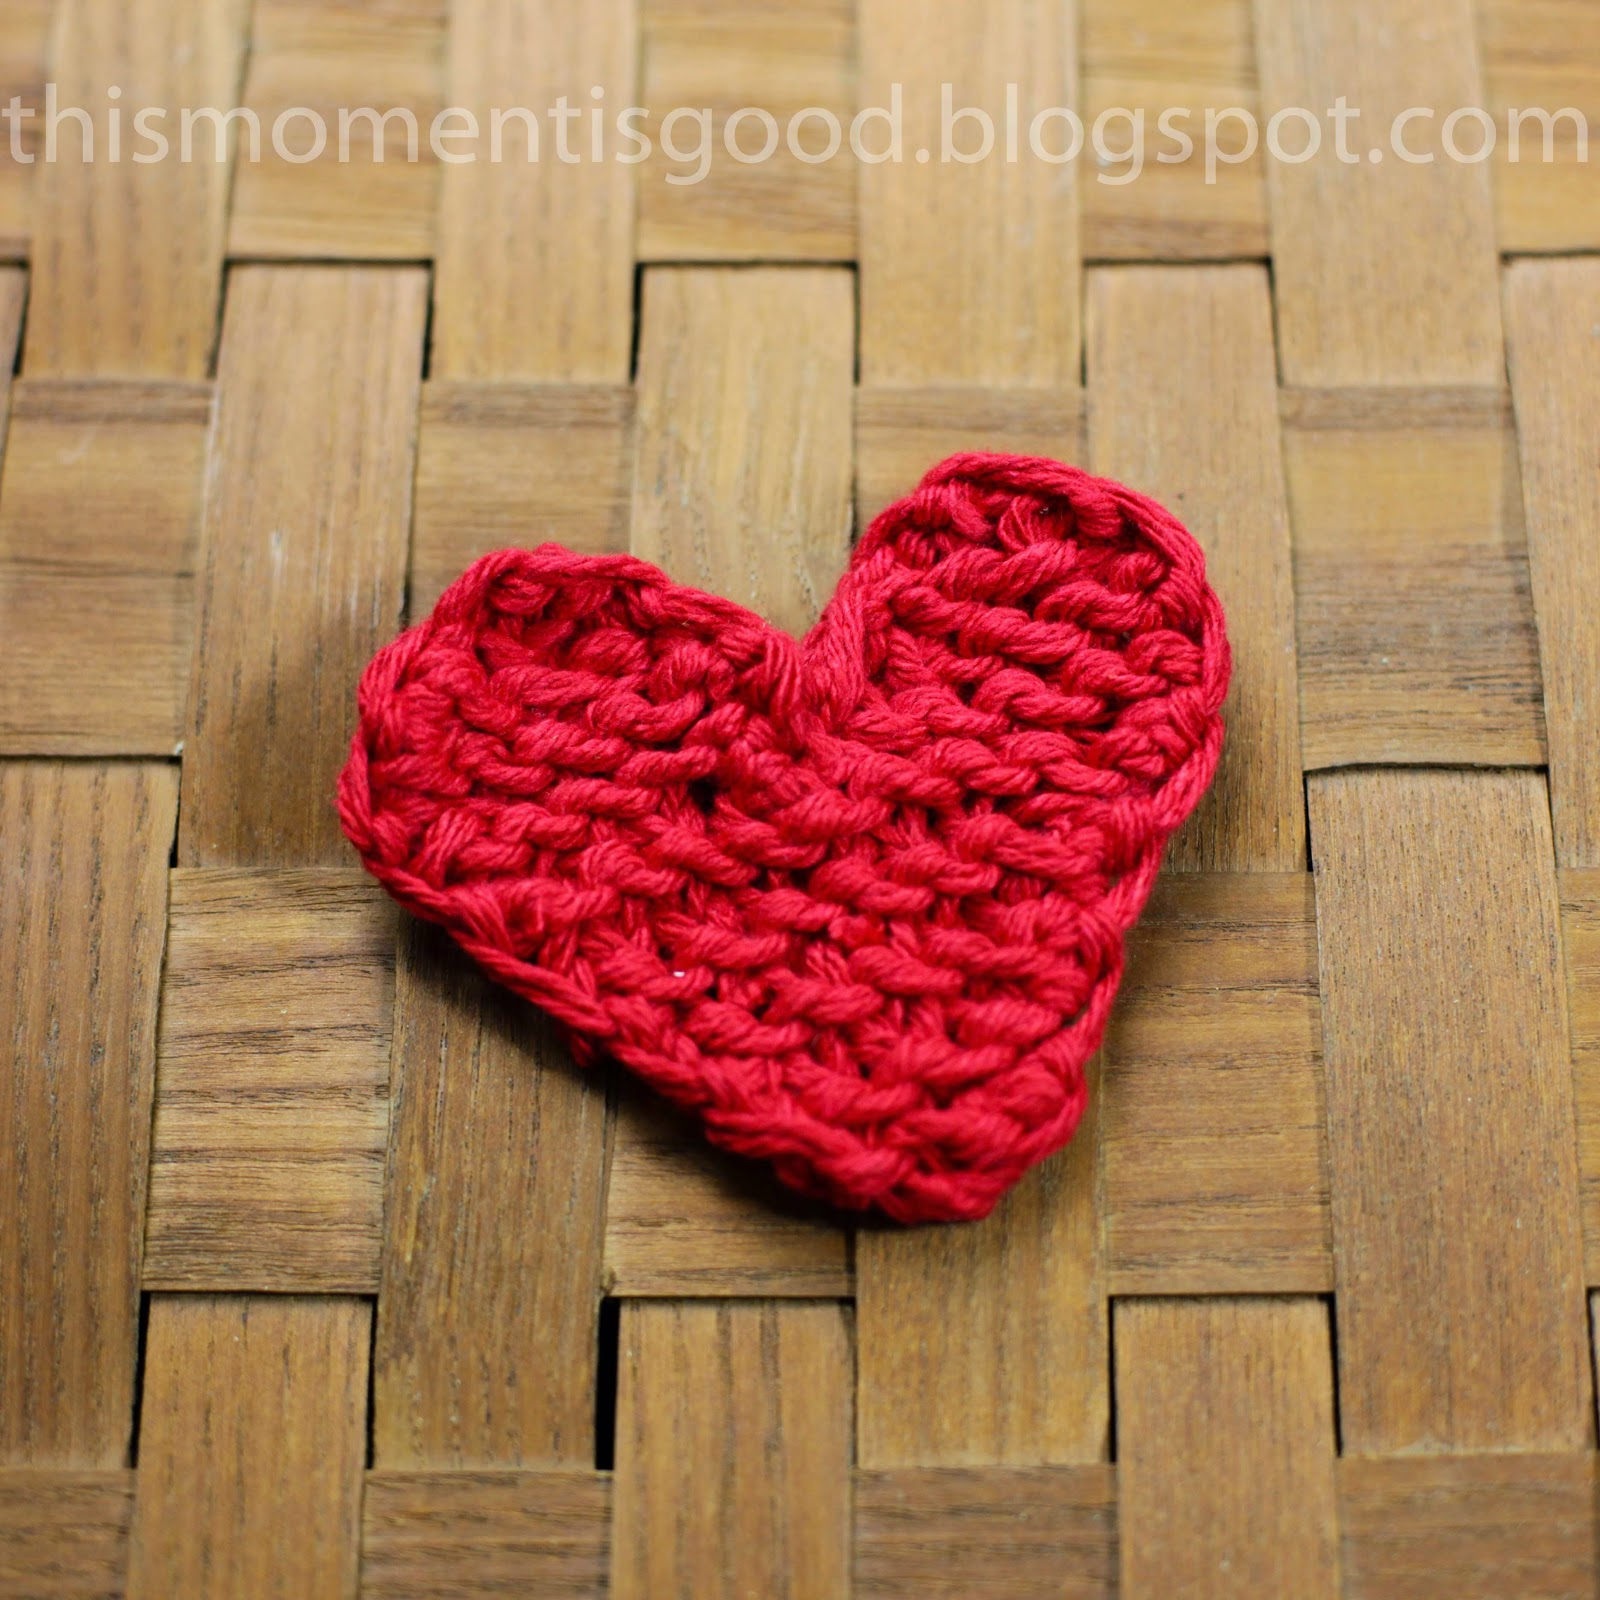 LOOM KNIT HEART - FREE PATTERN | Loom Knitting by This Moment is Good!